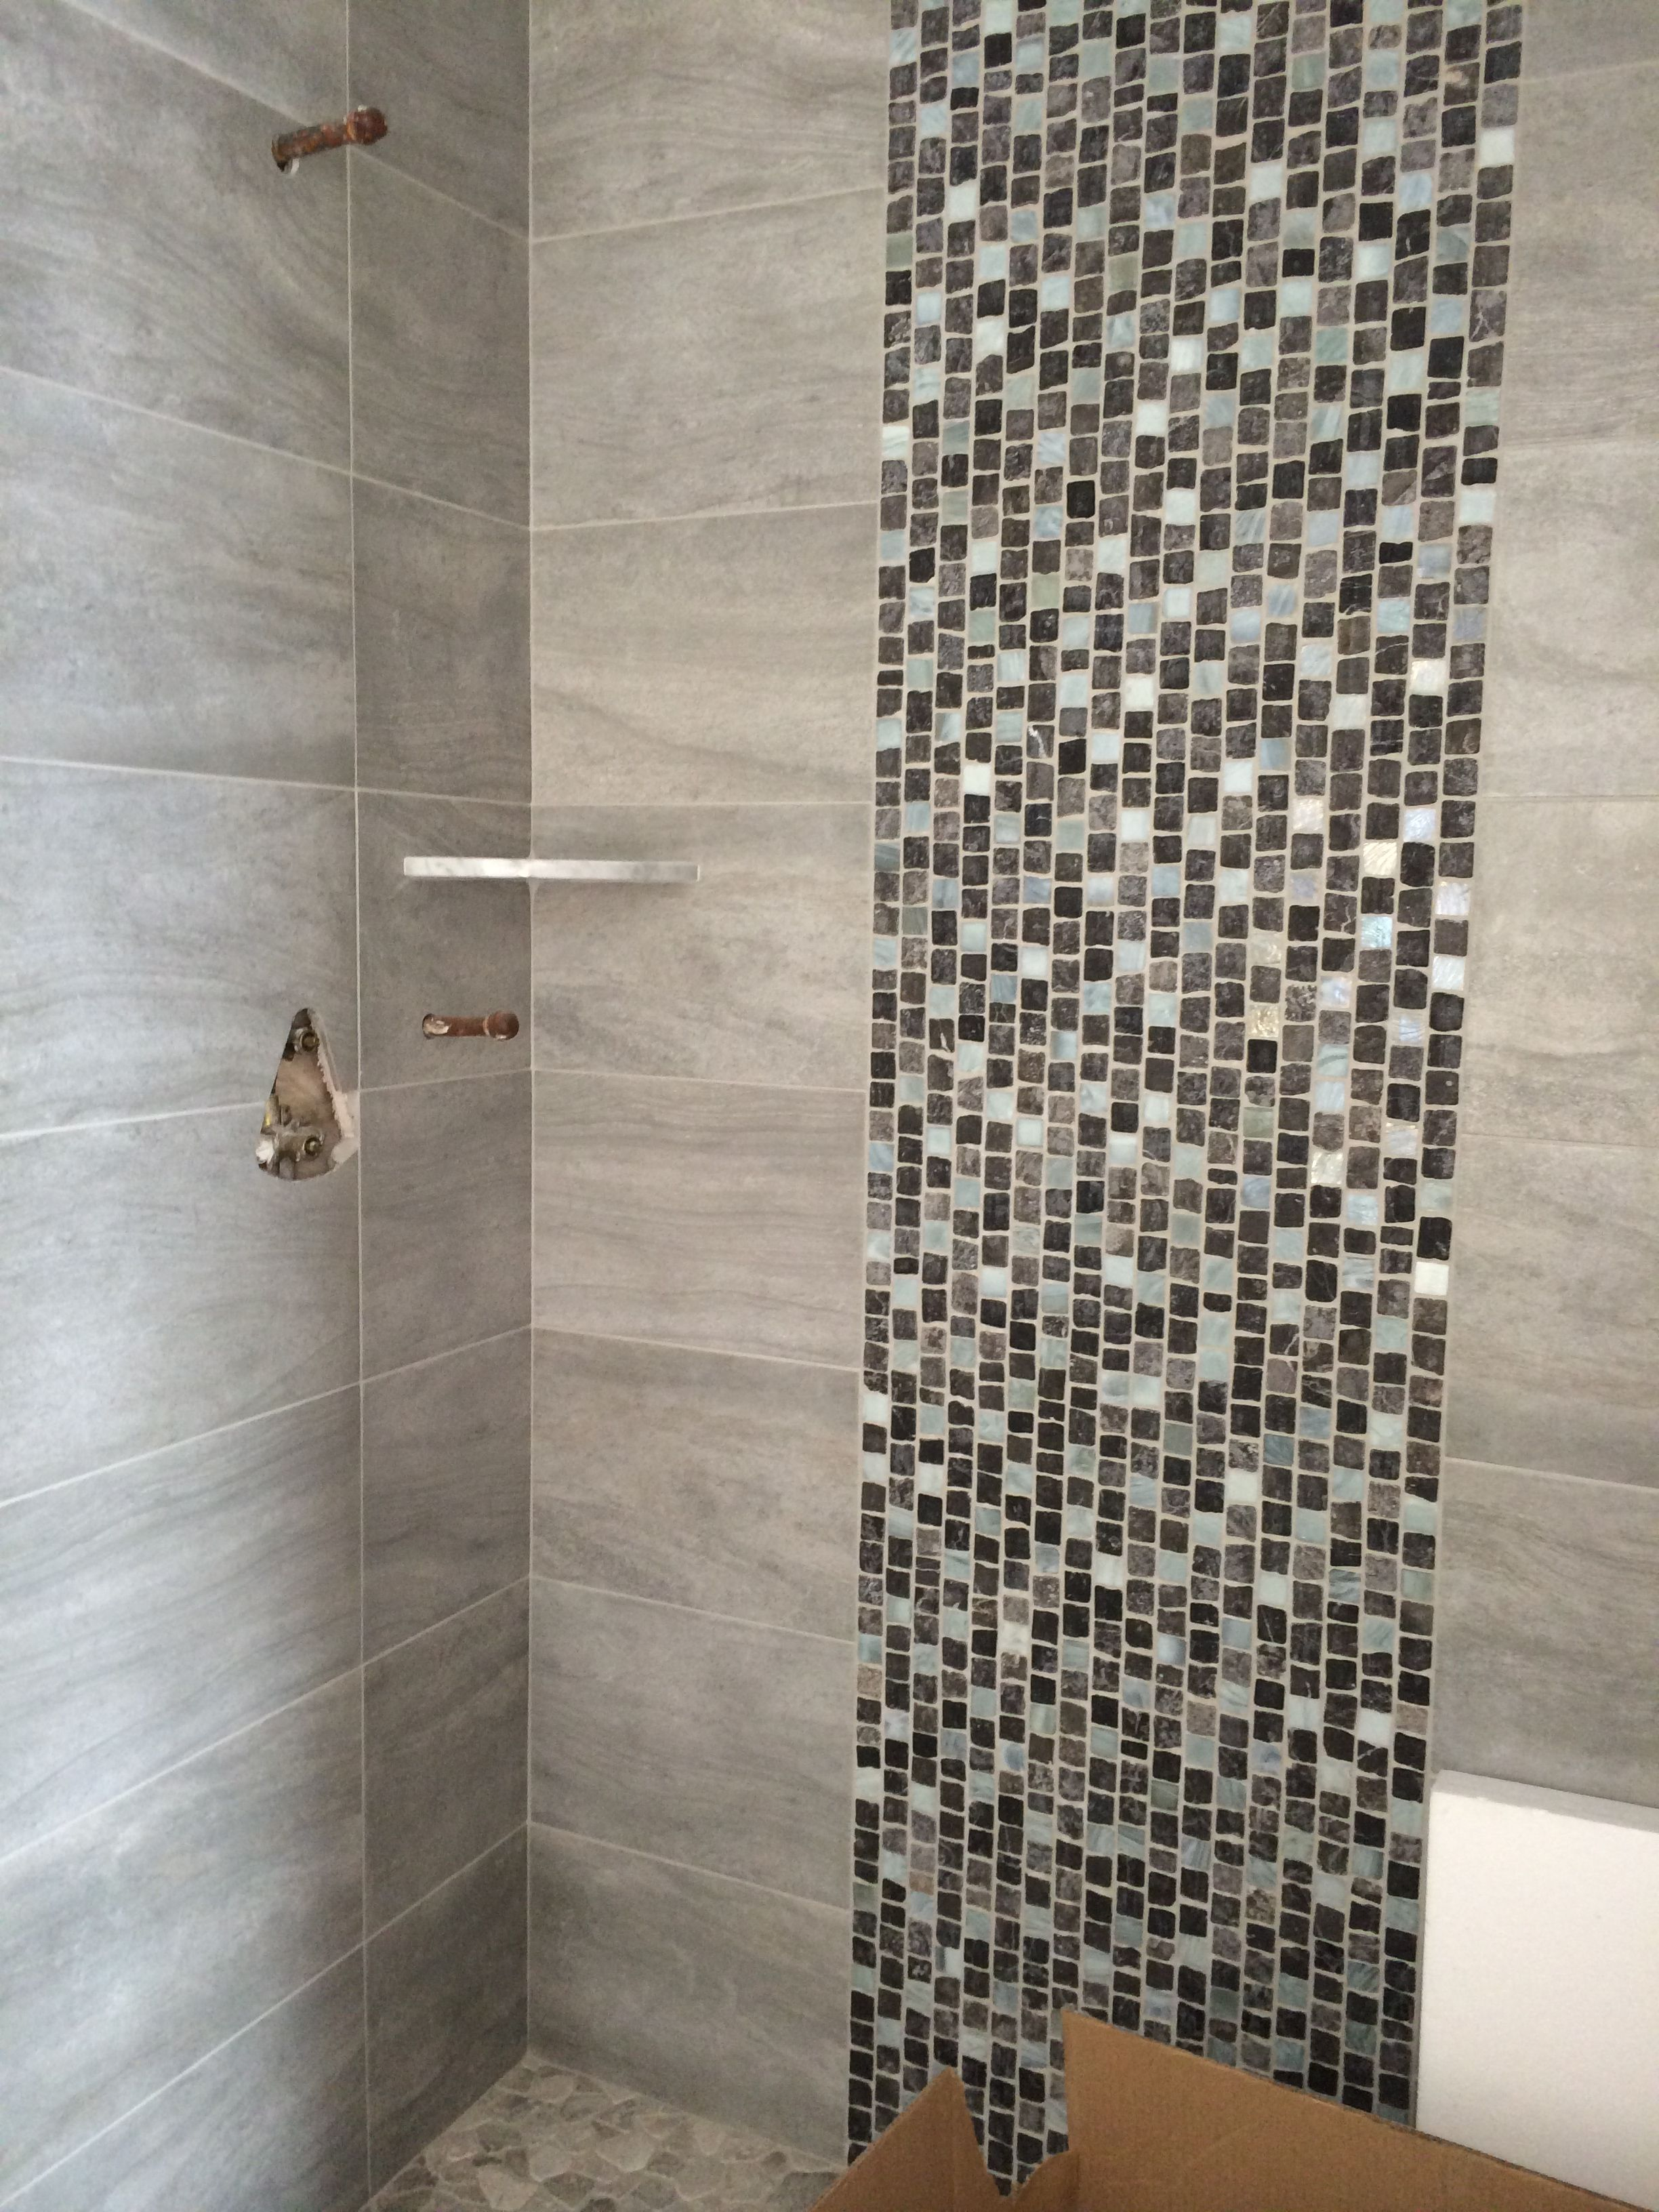 12 x 24 porcelain shower walls w/ stone and glass tile lisello ...